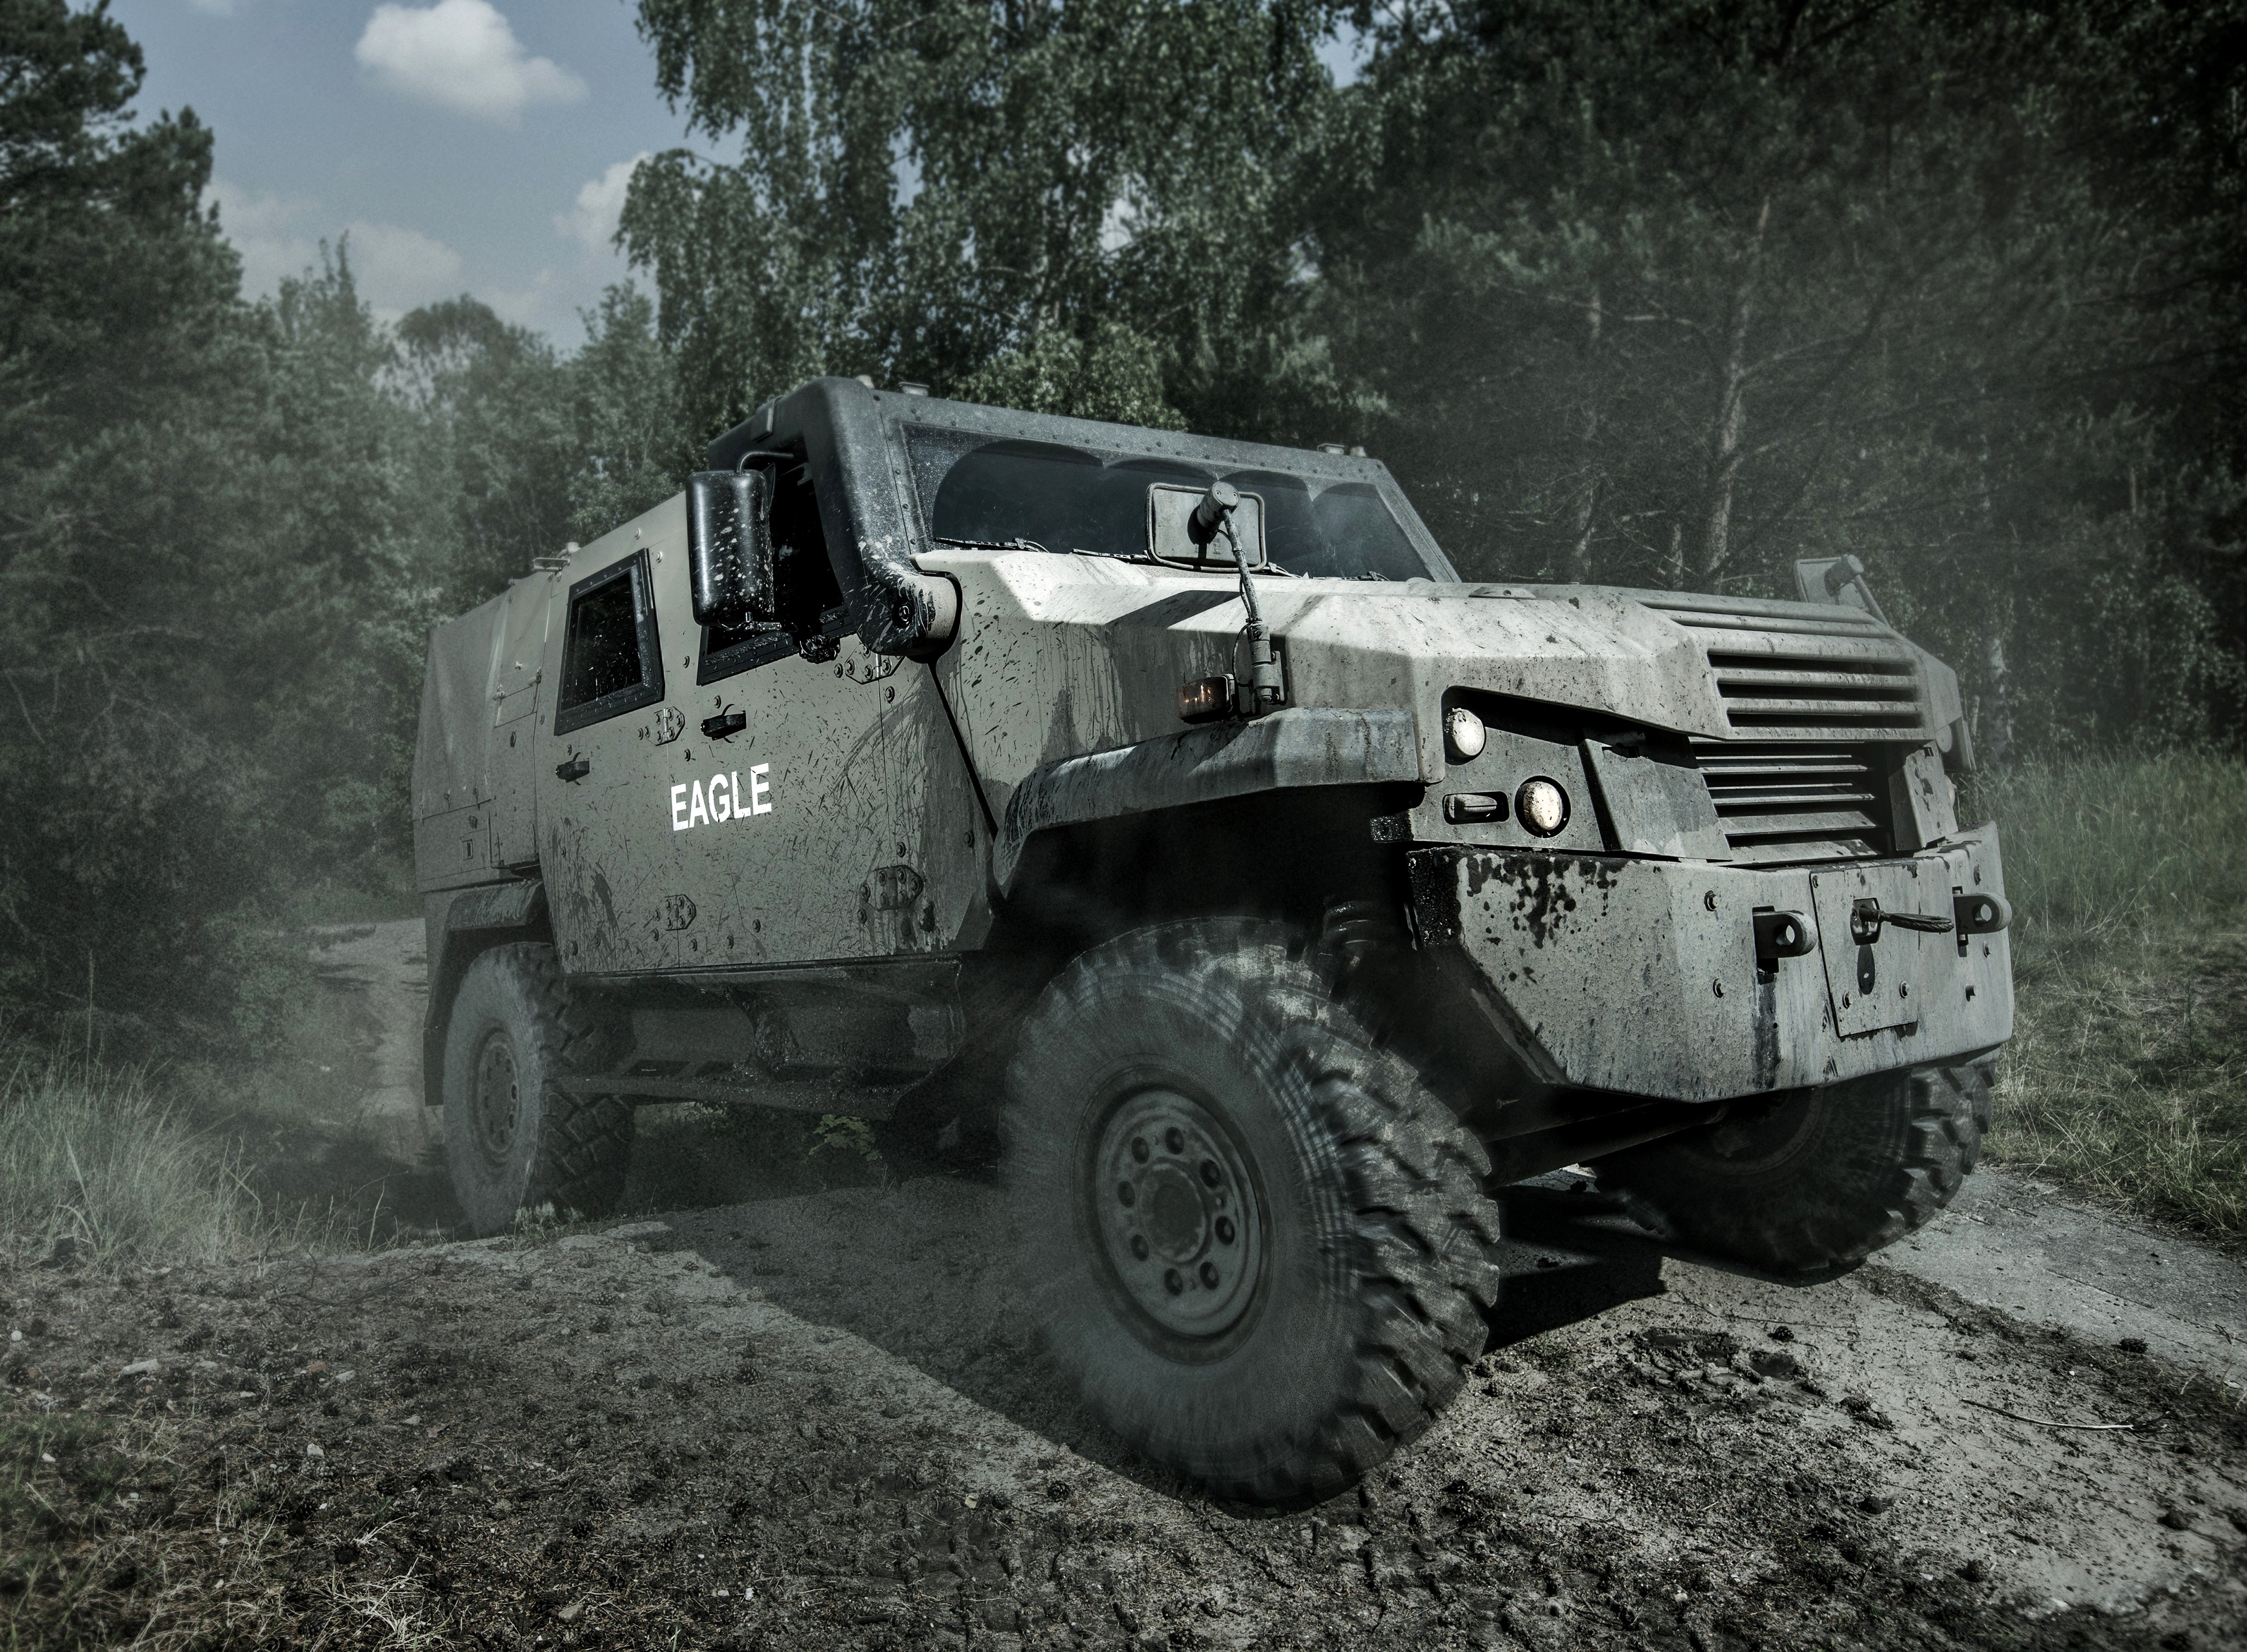 Off Road Cars Hd Wallpapers Wallpaper Mowag Eagle Wheeled Armored Vehicle Swiss Army